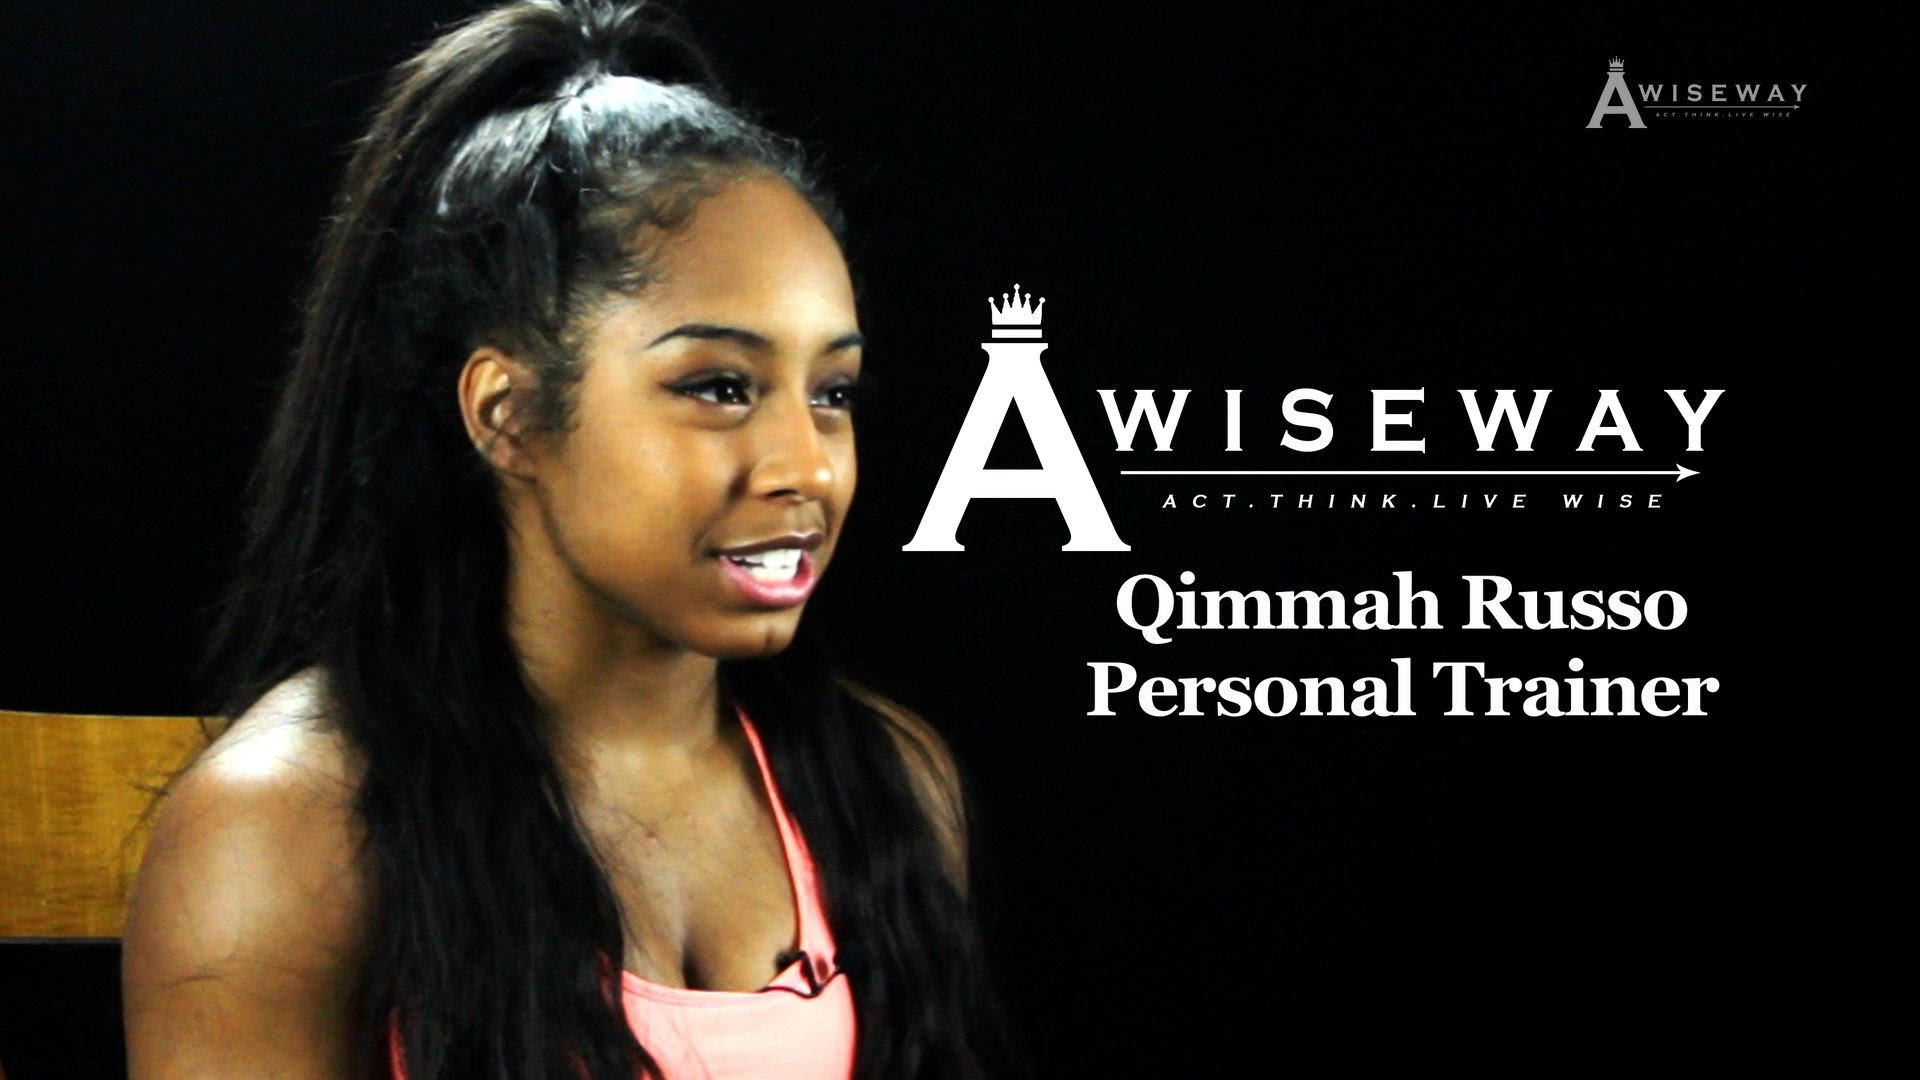 Qimmah Russo Inspires Others by Doing What She Loves